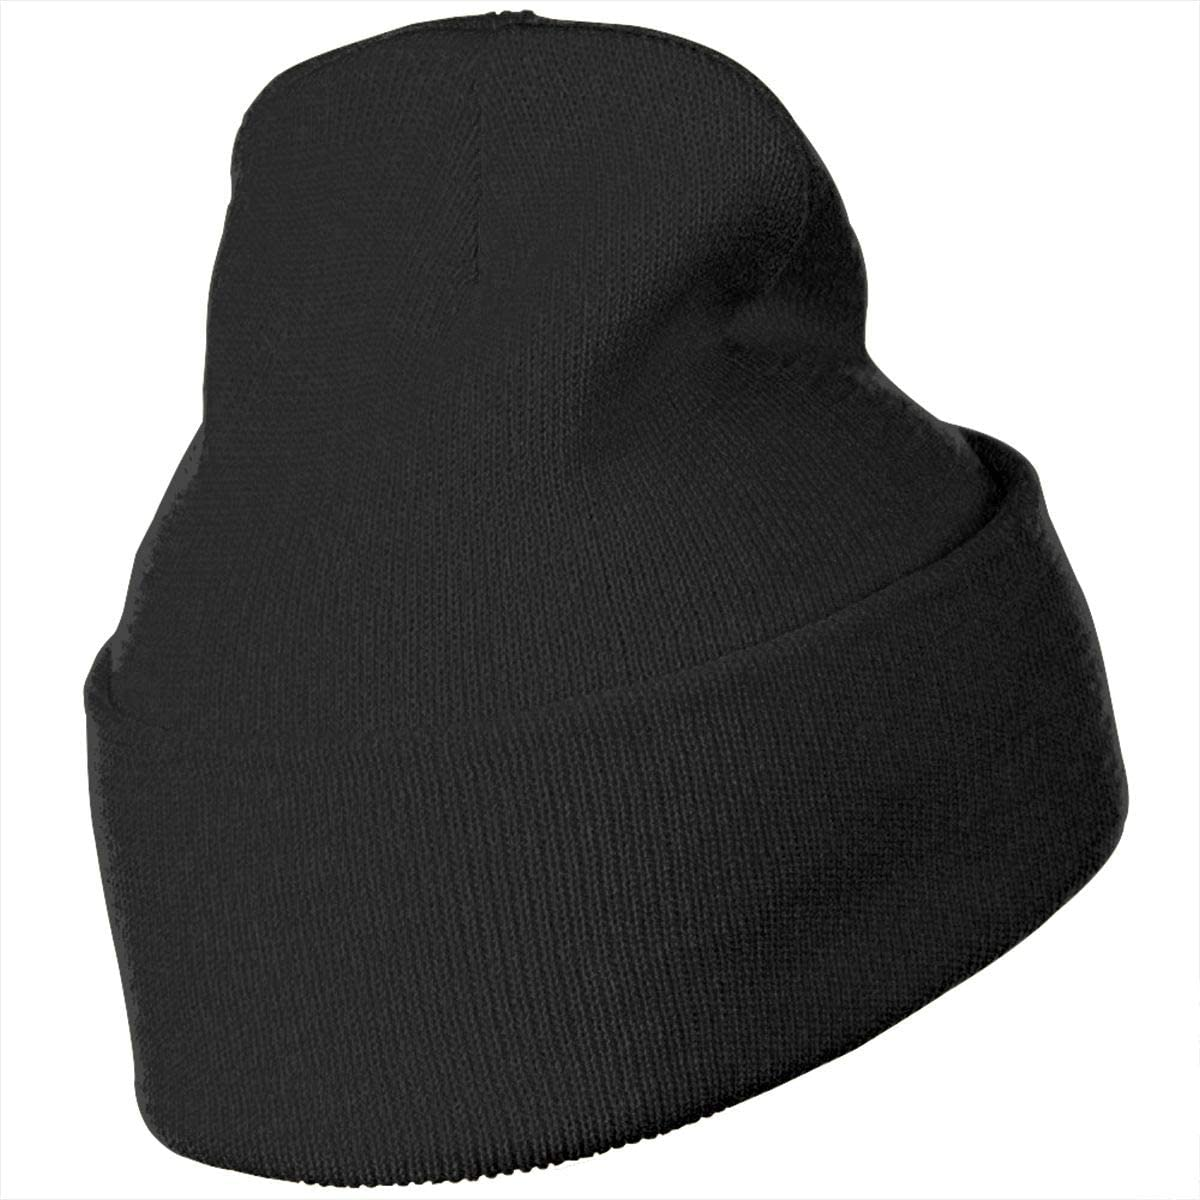 Red Fruit Warm Knit Winter Solid Beanie Hat Unisex Skull Cap